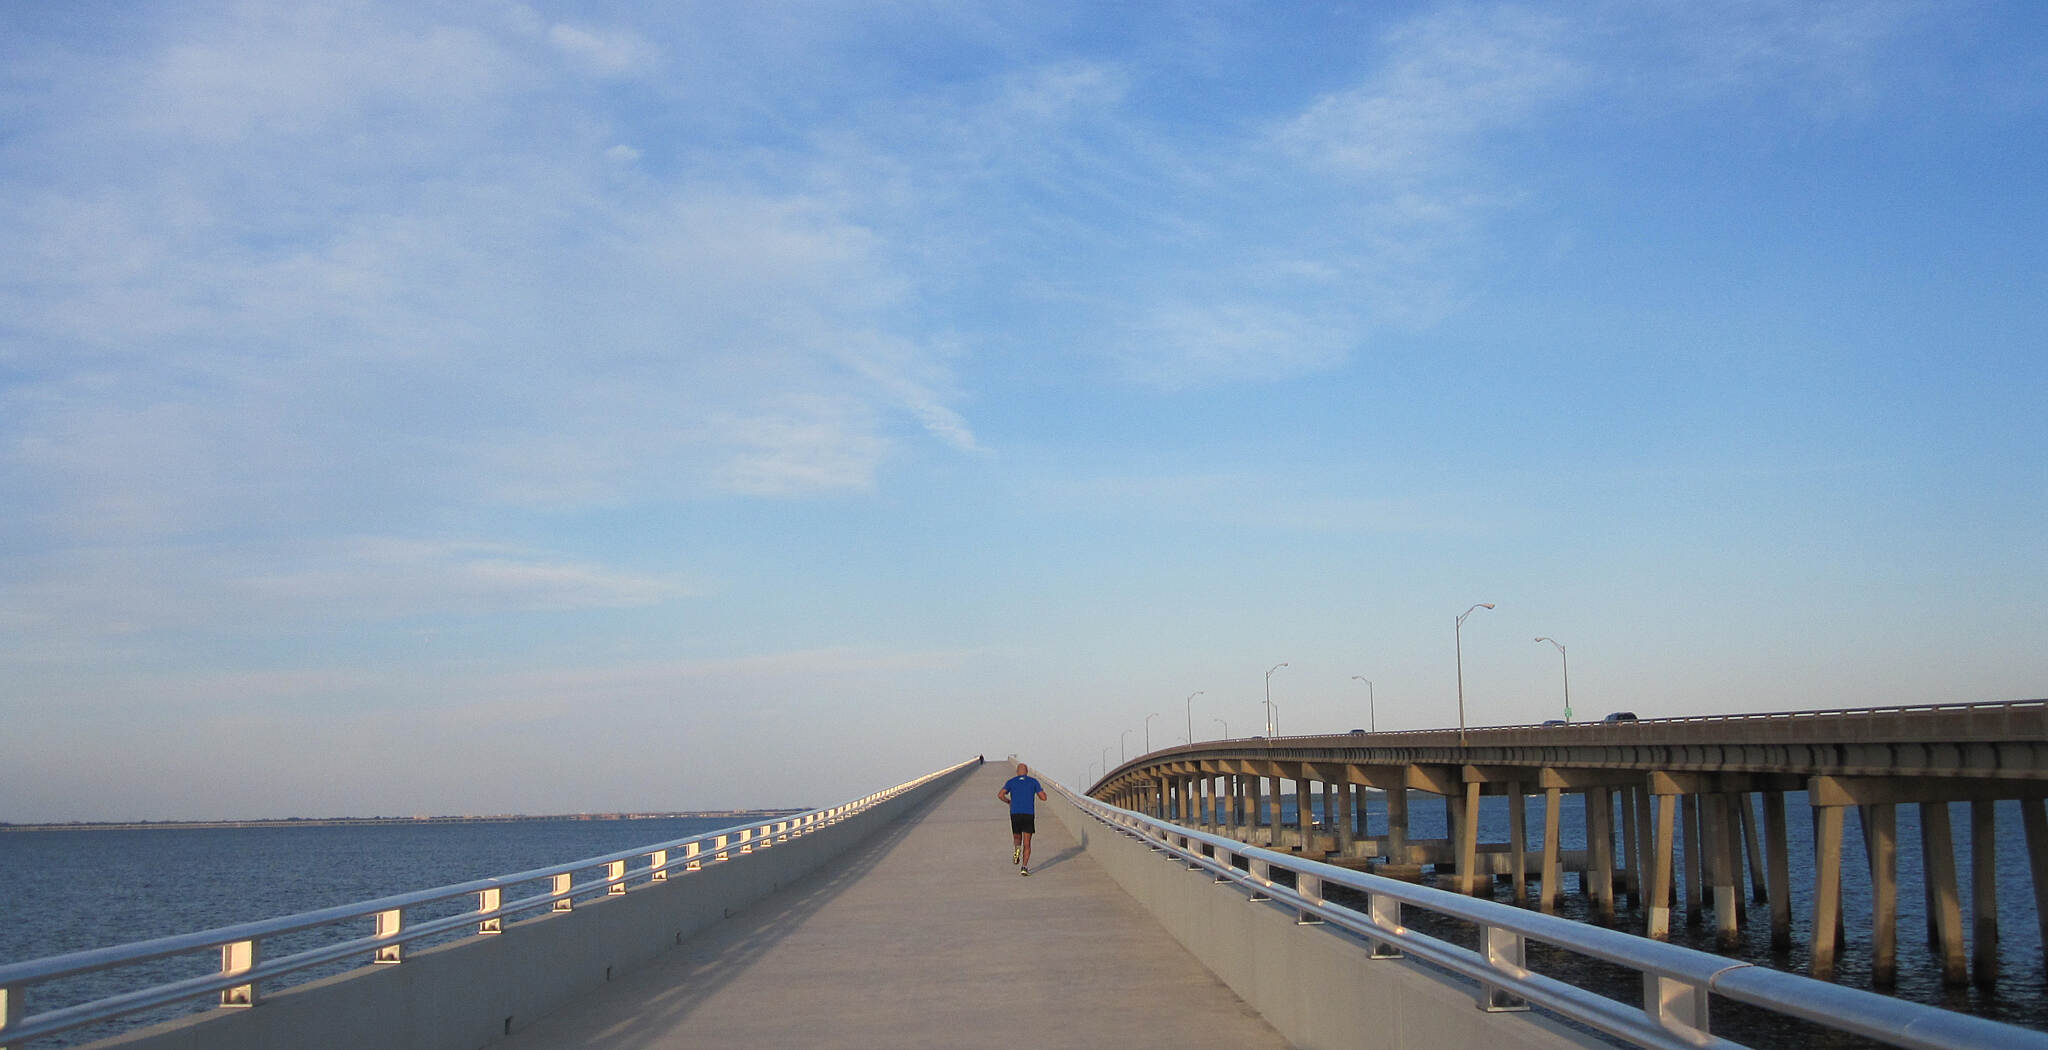 Courtney Campbell Trail Courtney Campbell Causeway '15 Much nicer looking for dolphins than looking for ice.  Great place for a vacation run.